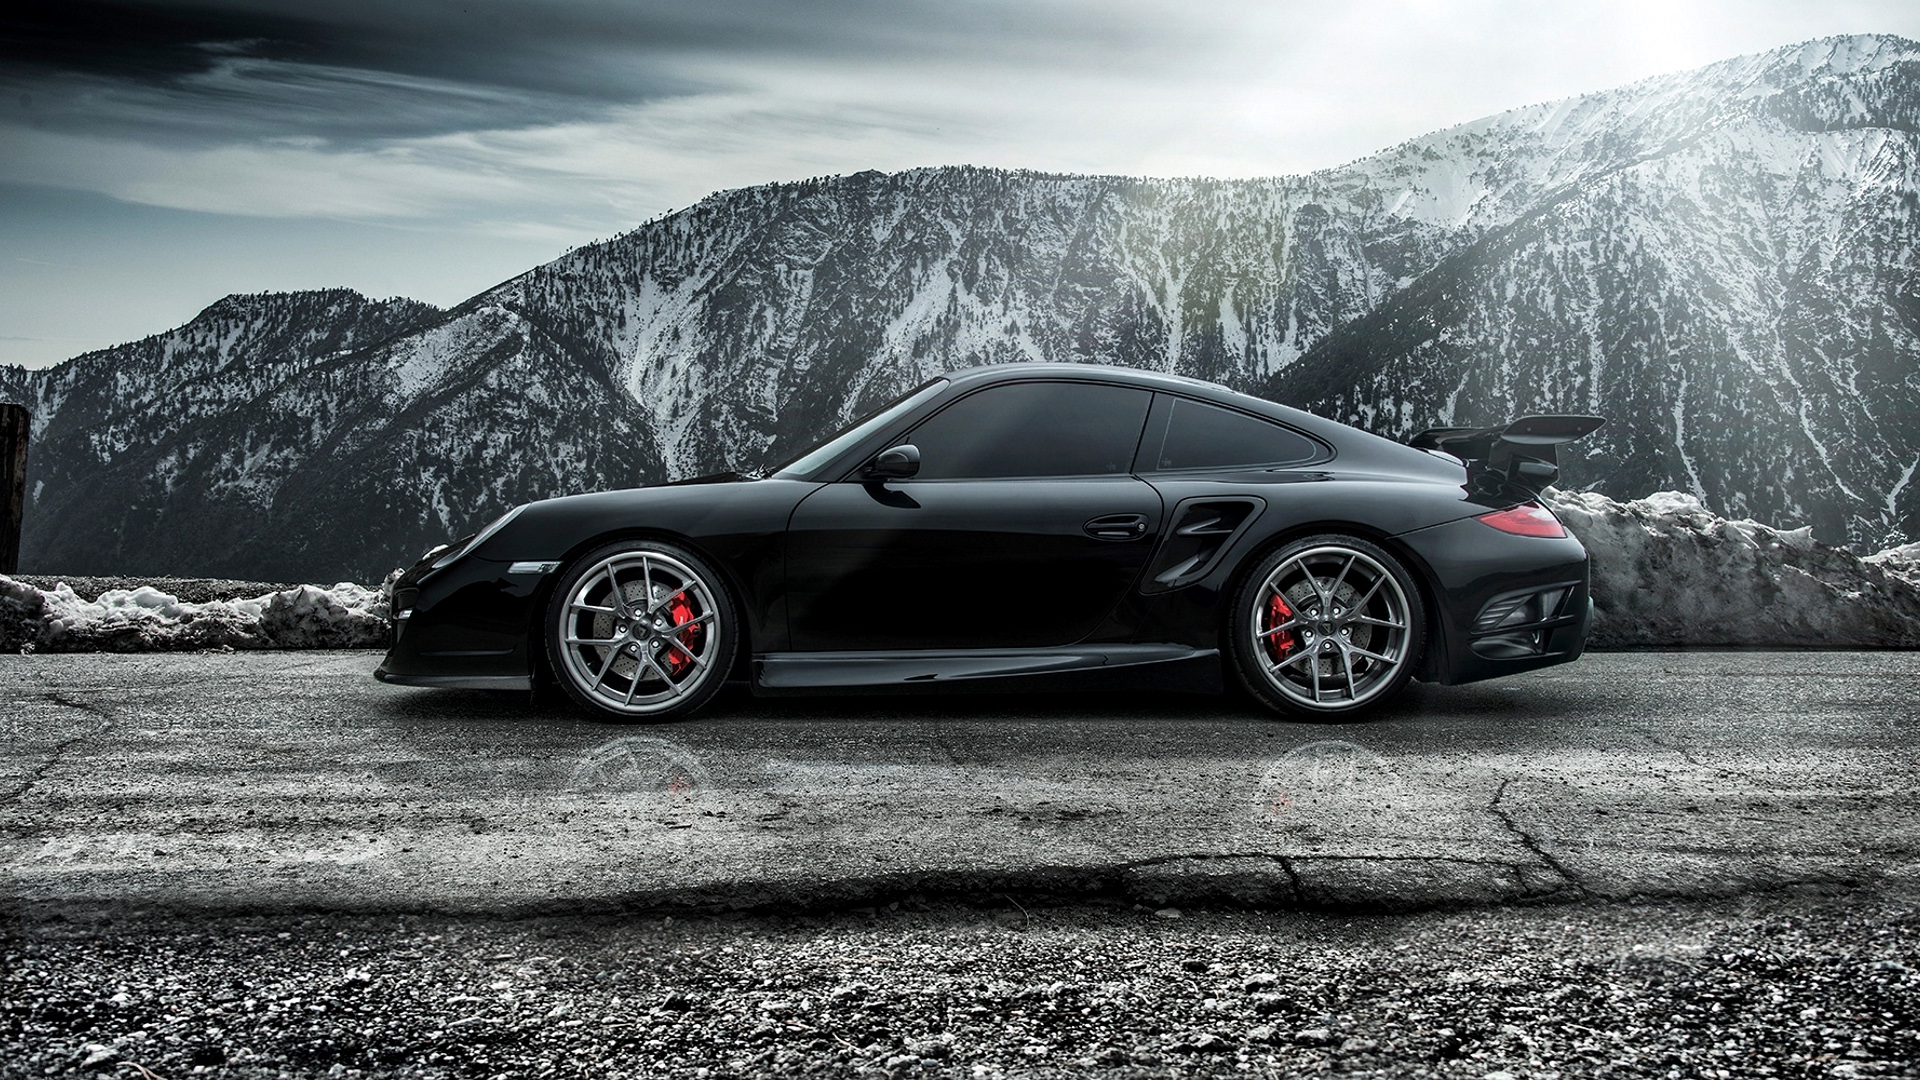 Vorsteiner Porsche 997 V Rt Edition 911 Turbo 2 Wallpaper